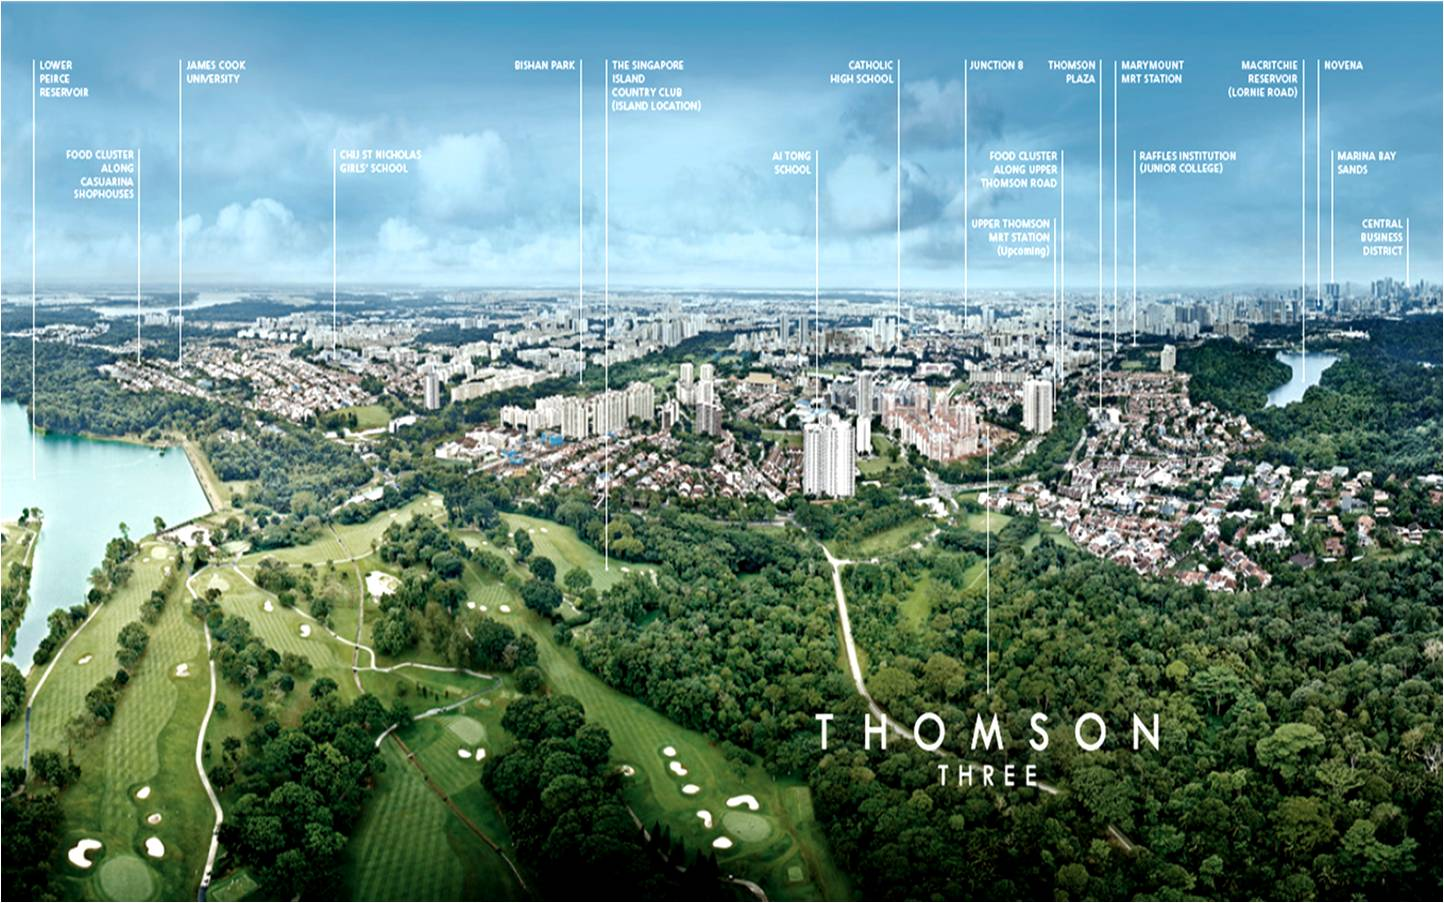 Thomson-Three-Birds-Eye-View